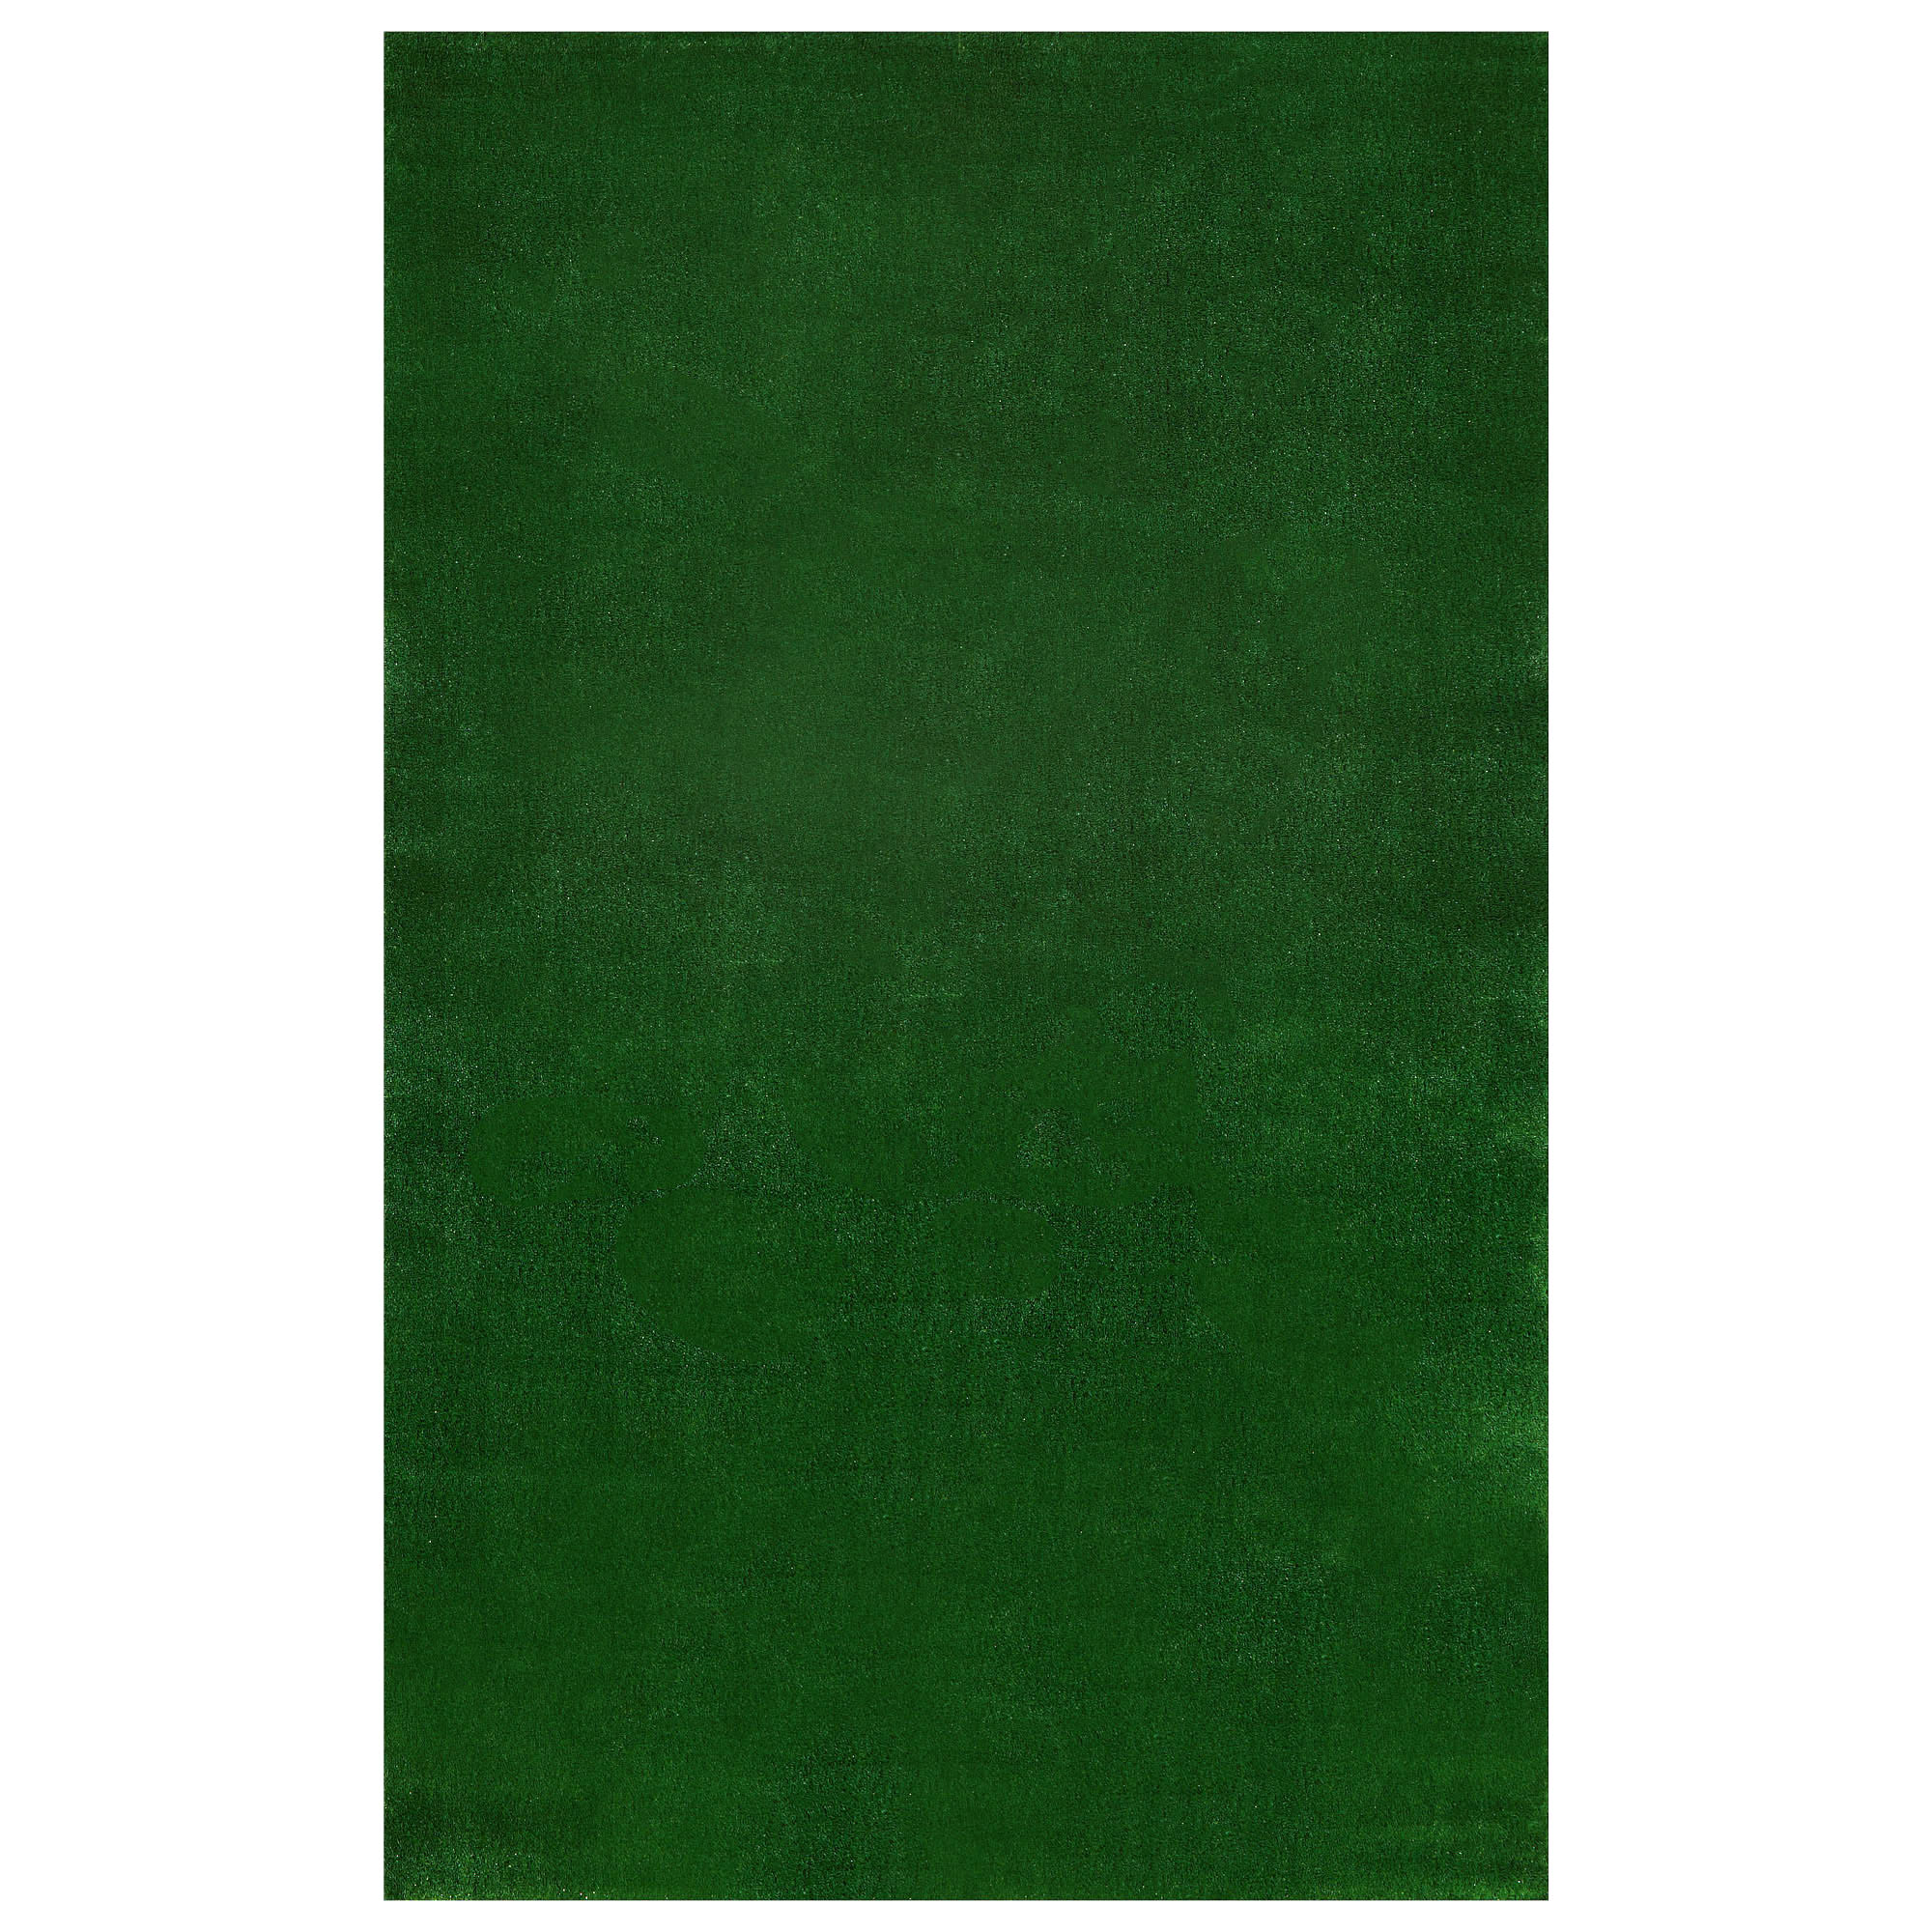 Ottomanson Evergreen Collection Indoor ; Outdoor, Patio Artificial Solid Green Grass Turf Design